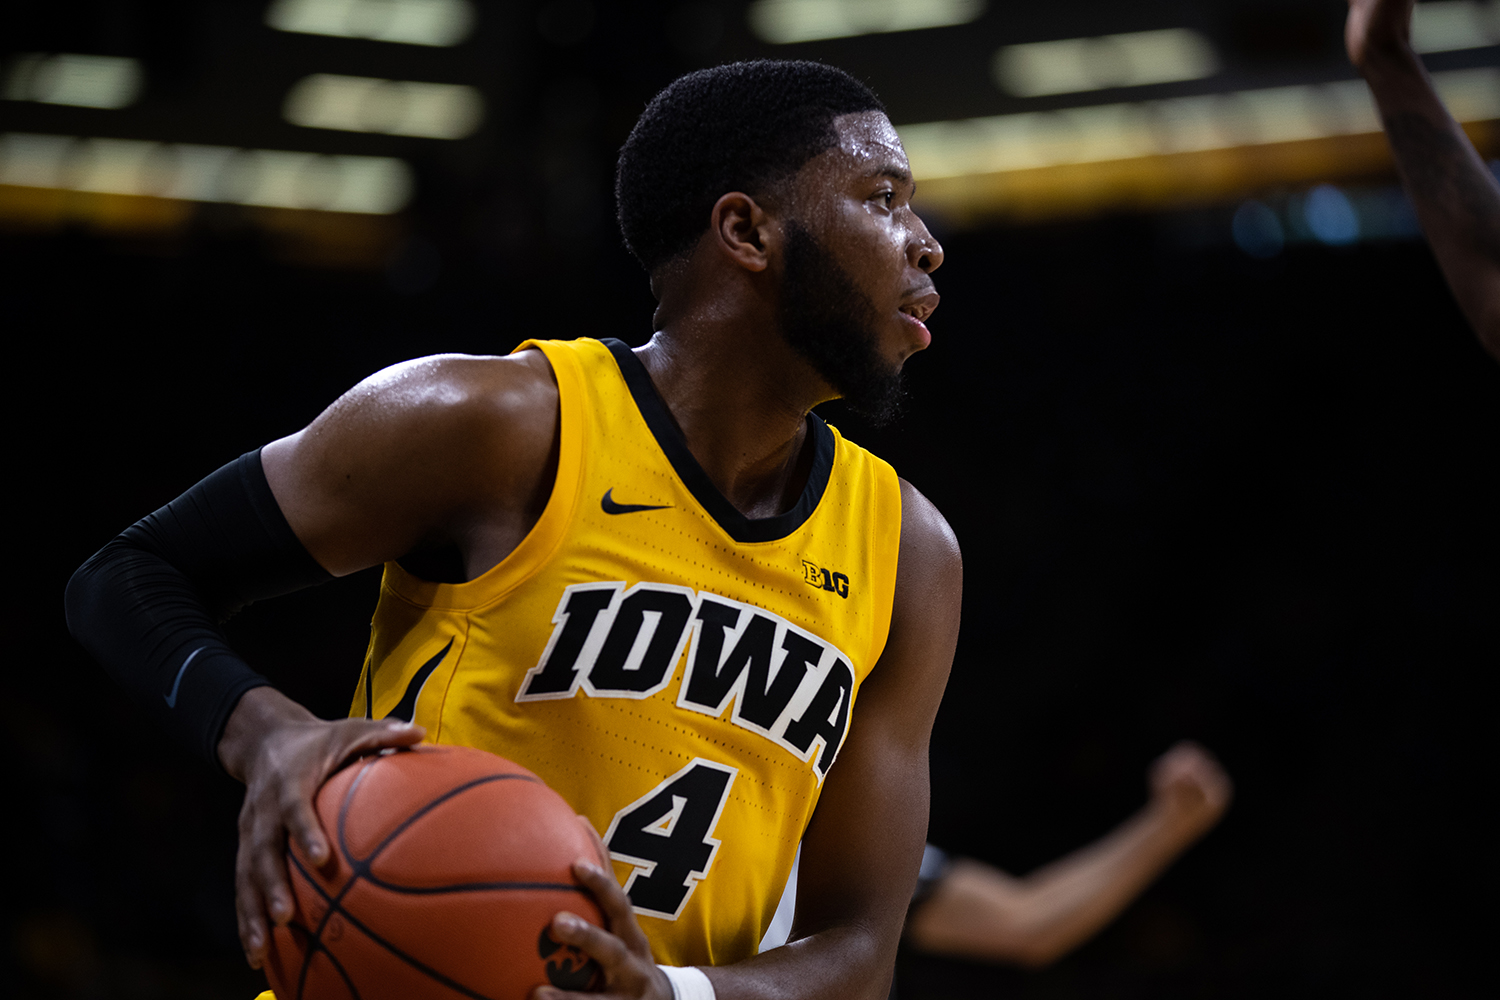 Iowa+guard+Isaiah+Moss+%234+reads+the+court+during+the+men%27s+basketball+game+against+Savannah+State+at+Carver-Hawkeye+Arena+on+Tuesday%2C+December+22%2C+2018.+The+Hawkeyes+defeated+the+Tigers+110-64.